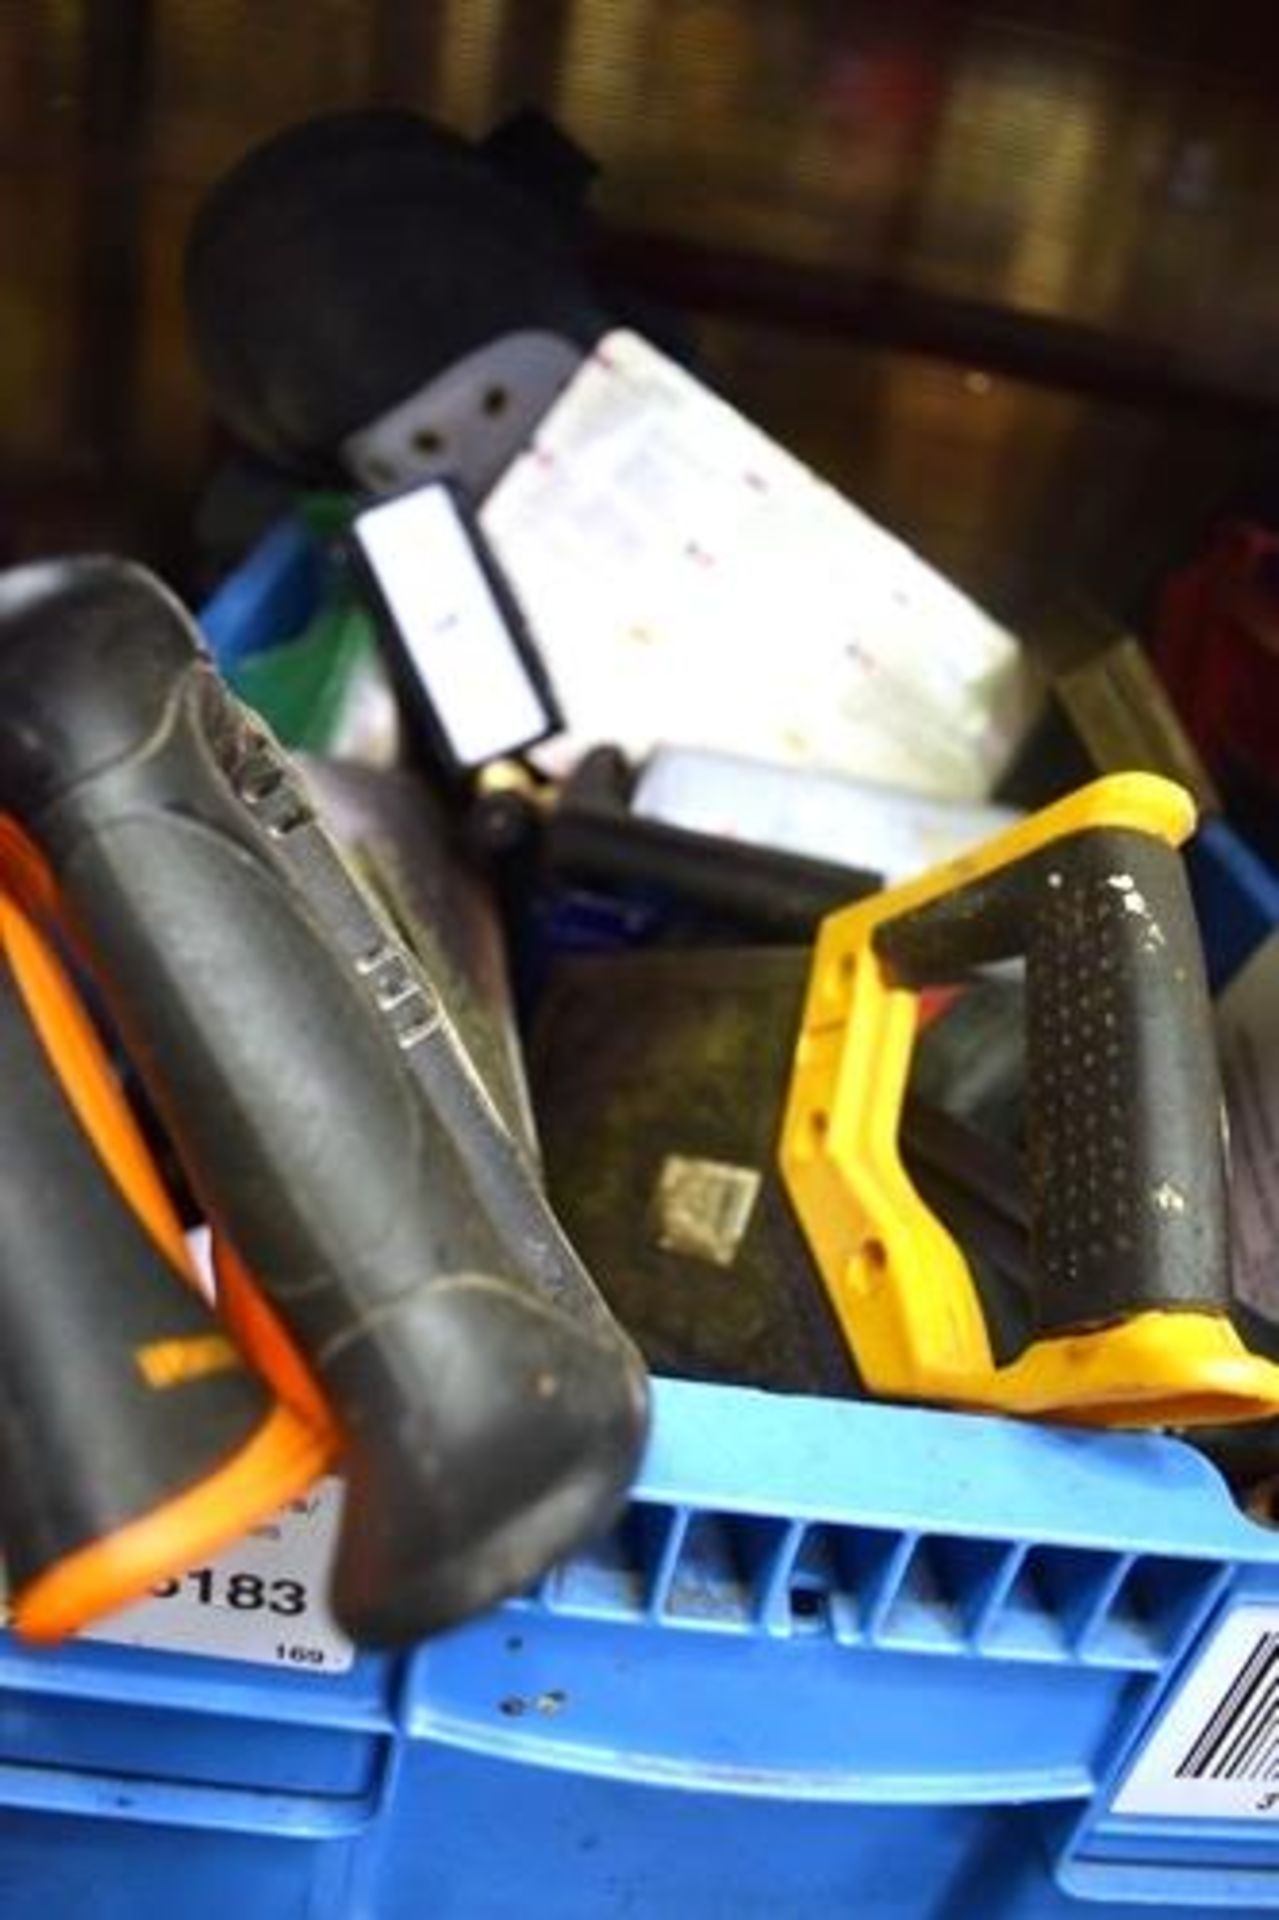 Lot 5 - 2 x boxes of assorted hand tools including hacksaws, screwdrivers etc. - Second-hand (GS14)